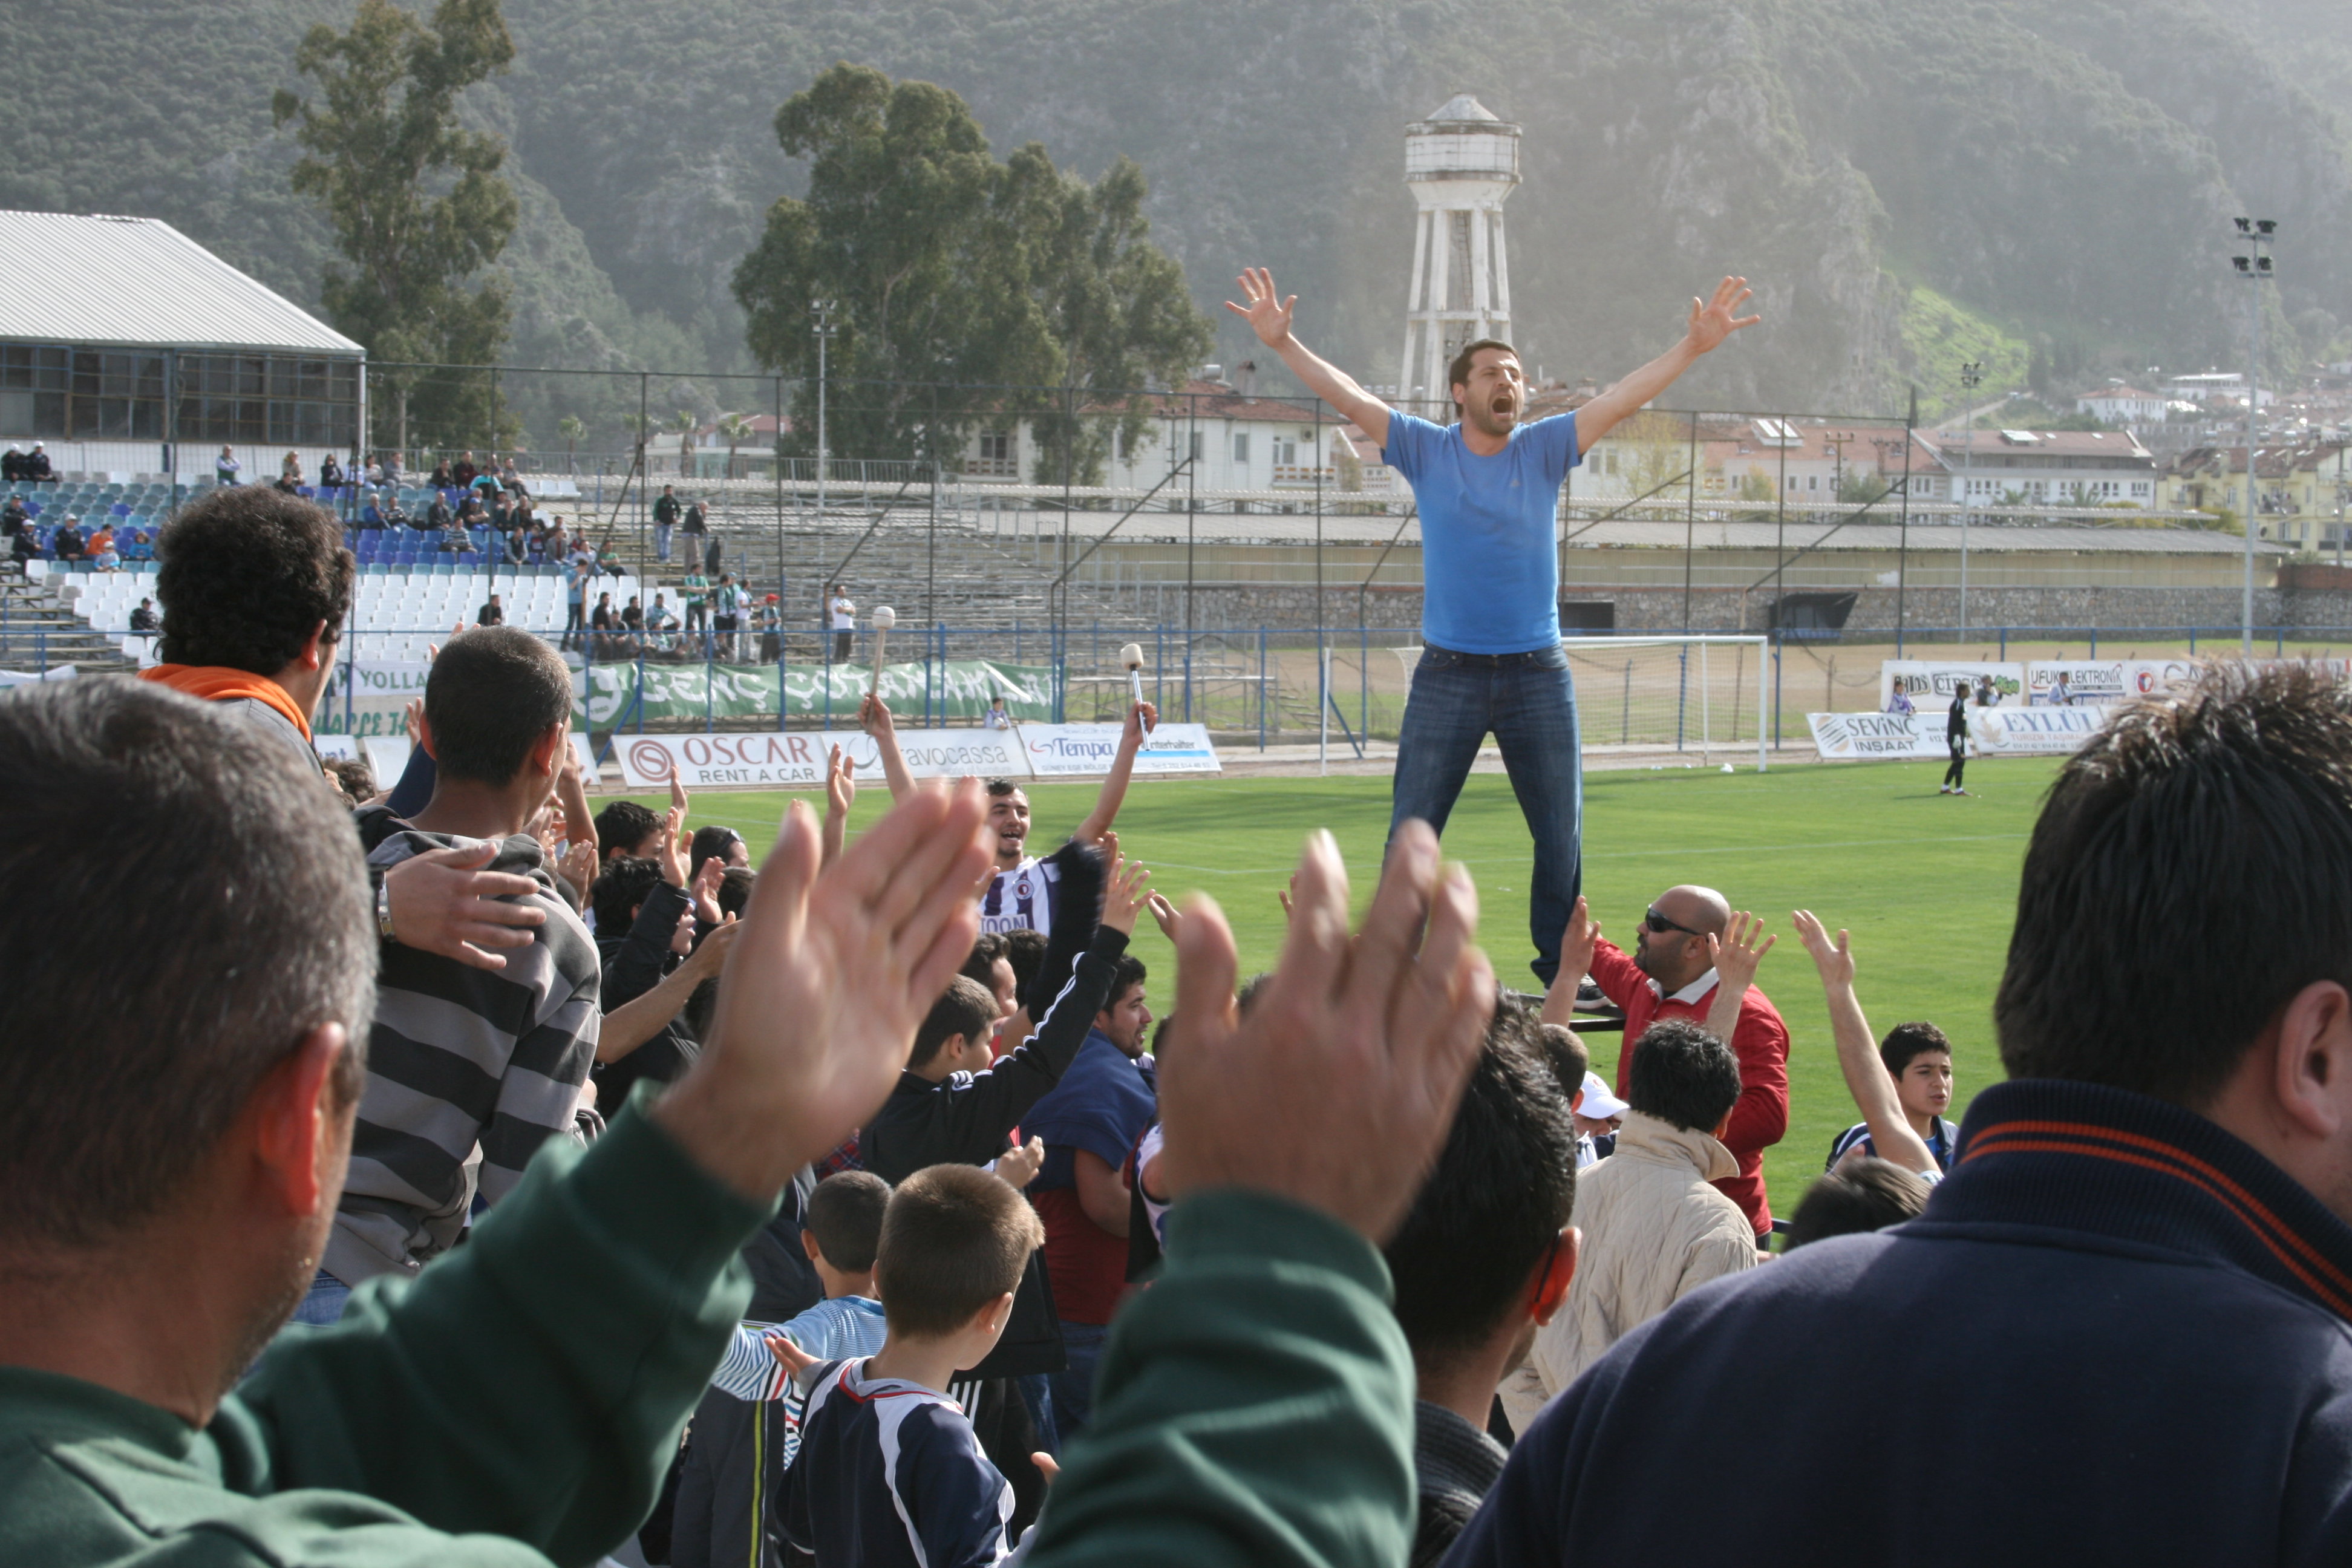 Cheers And Chants For Football http://mgintravels.wordpress.com/2013/03/15/fethiye-wins-the-football-match/